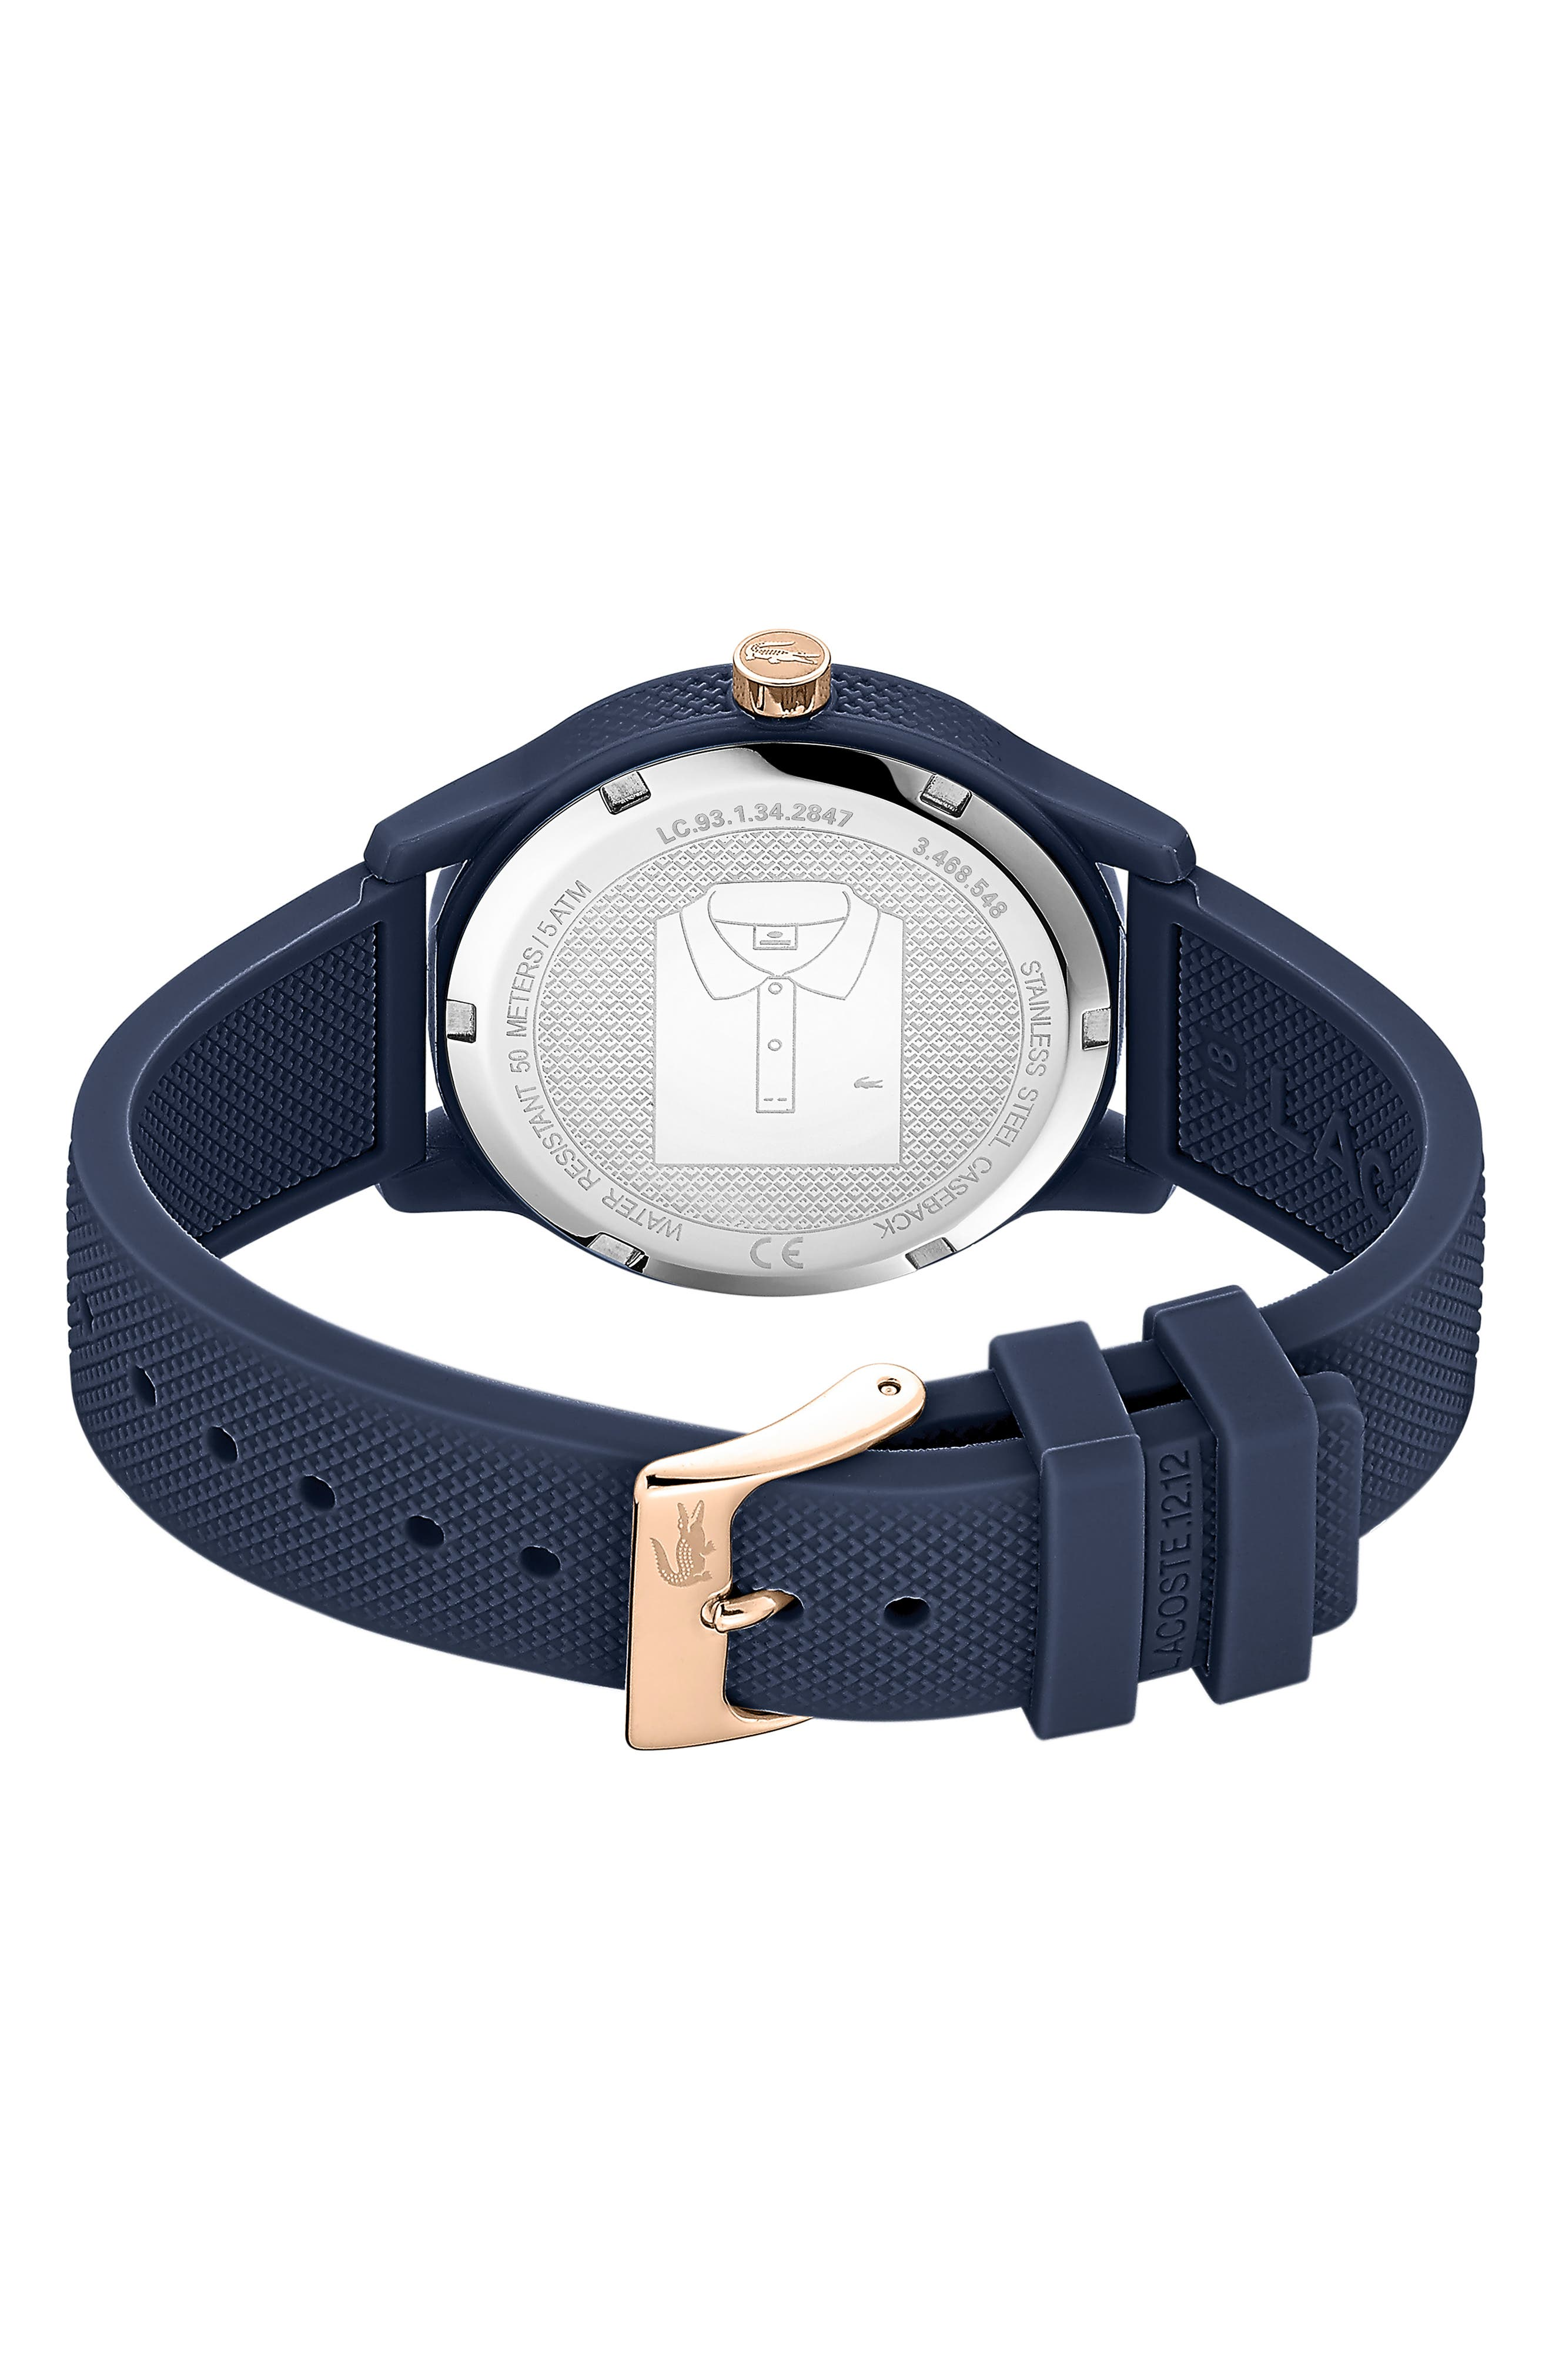 LACOSTE, 12.12 Silicone Strap Watch, 36mm, Alternate thumbnail 2, color, BLUE